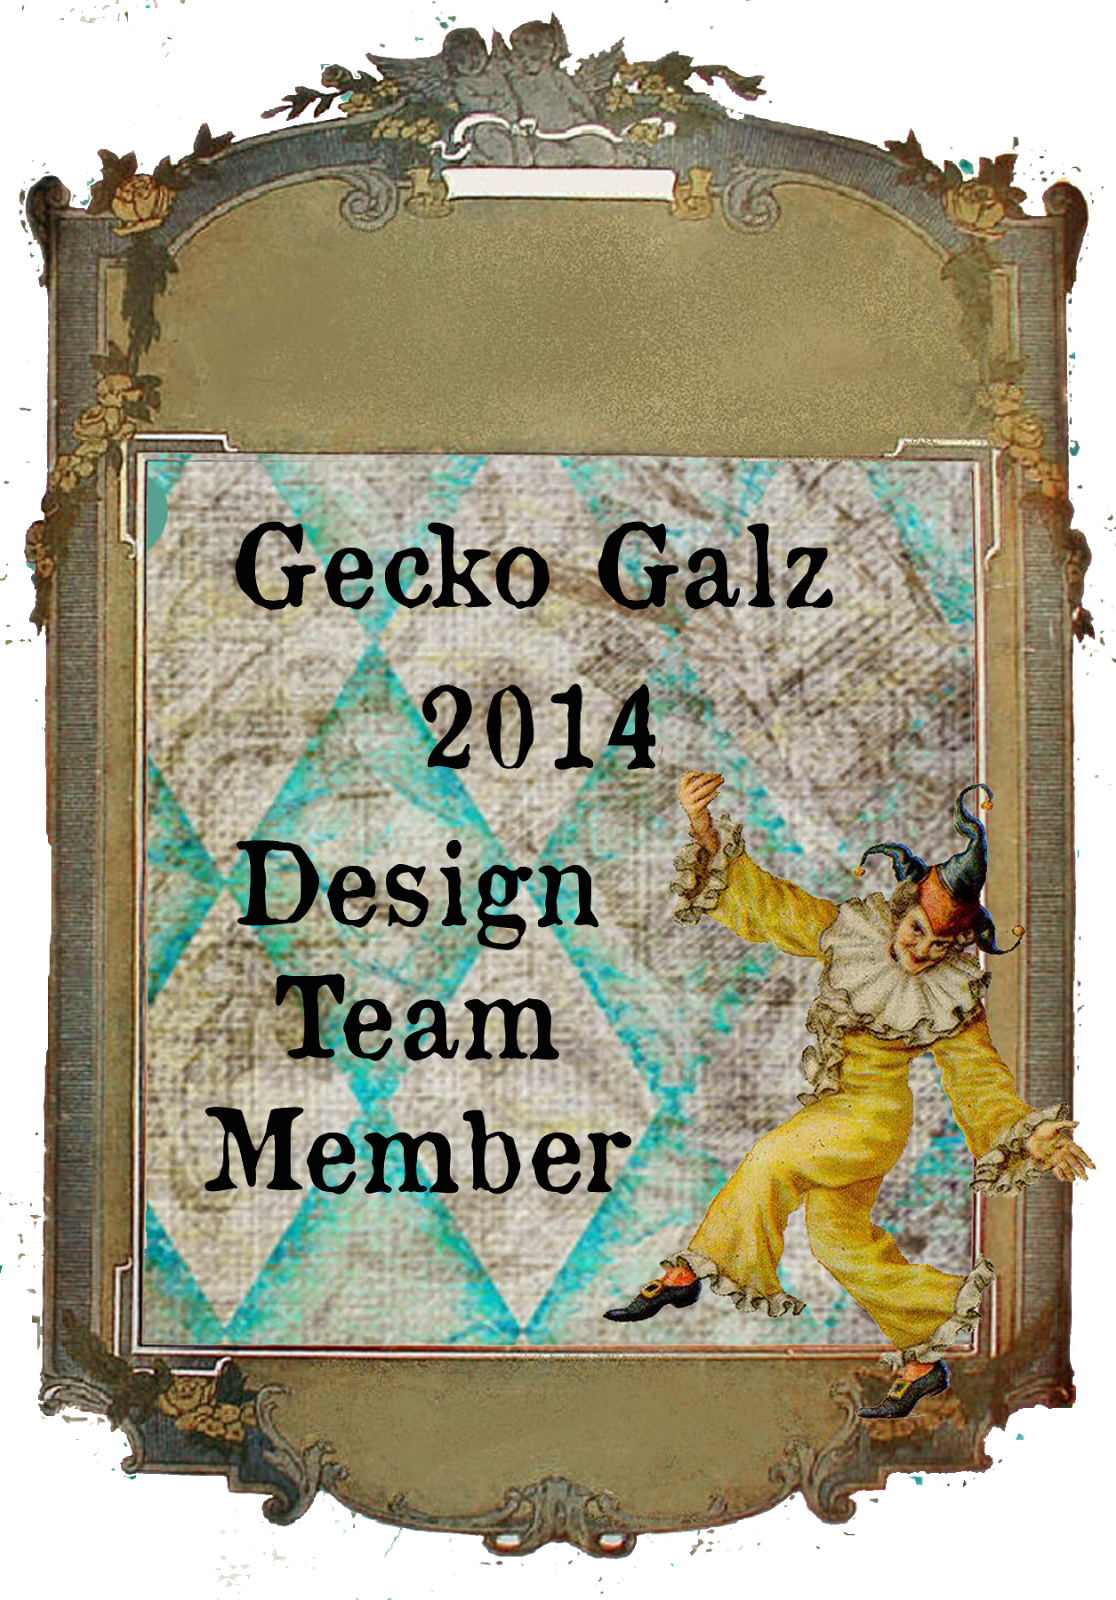 Gecko Galz 2014  Design Team